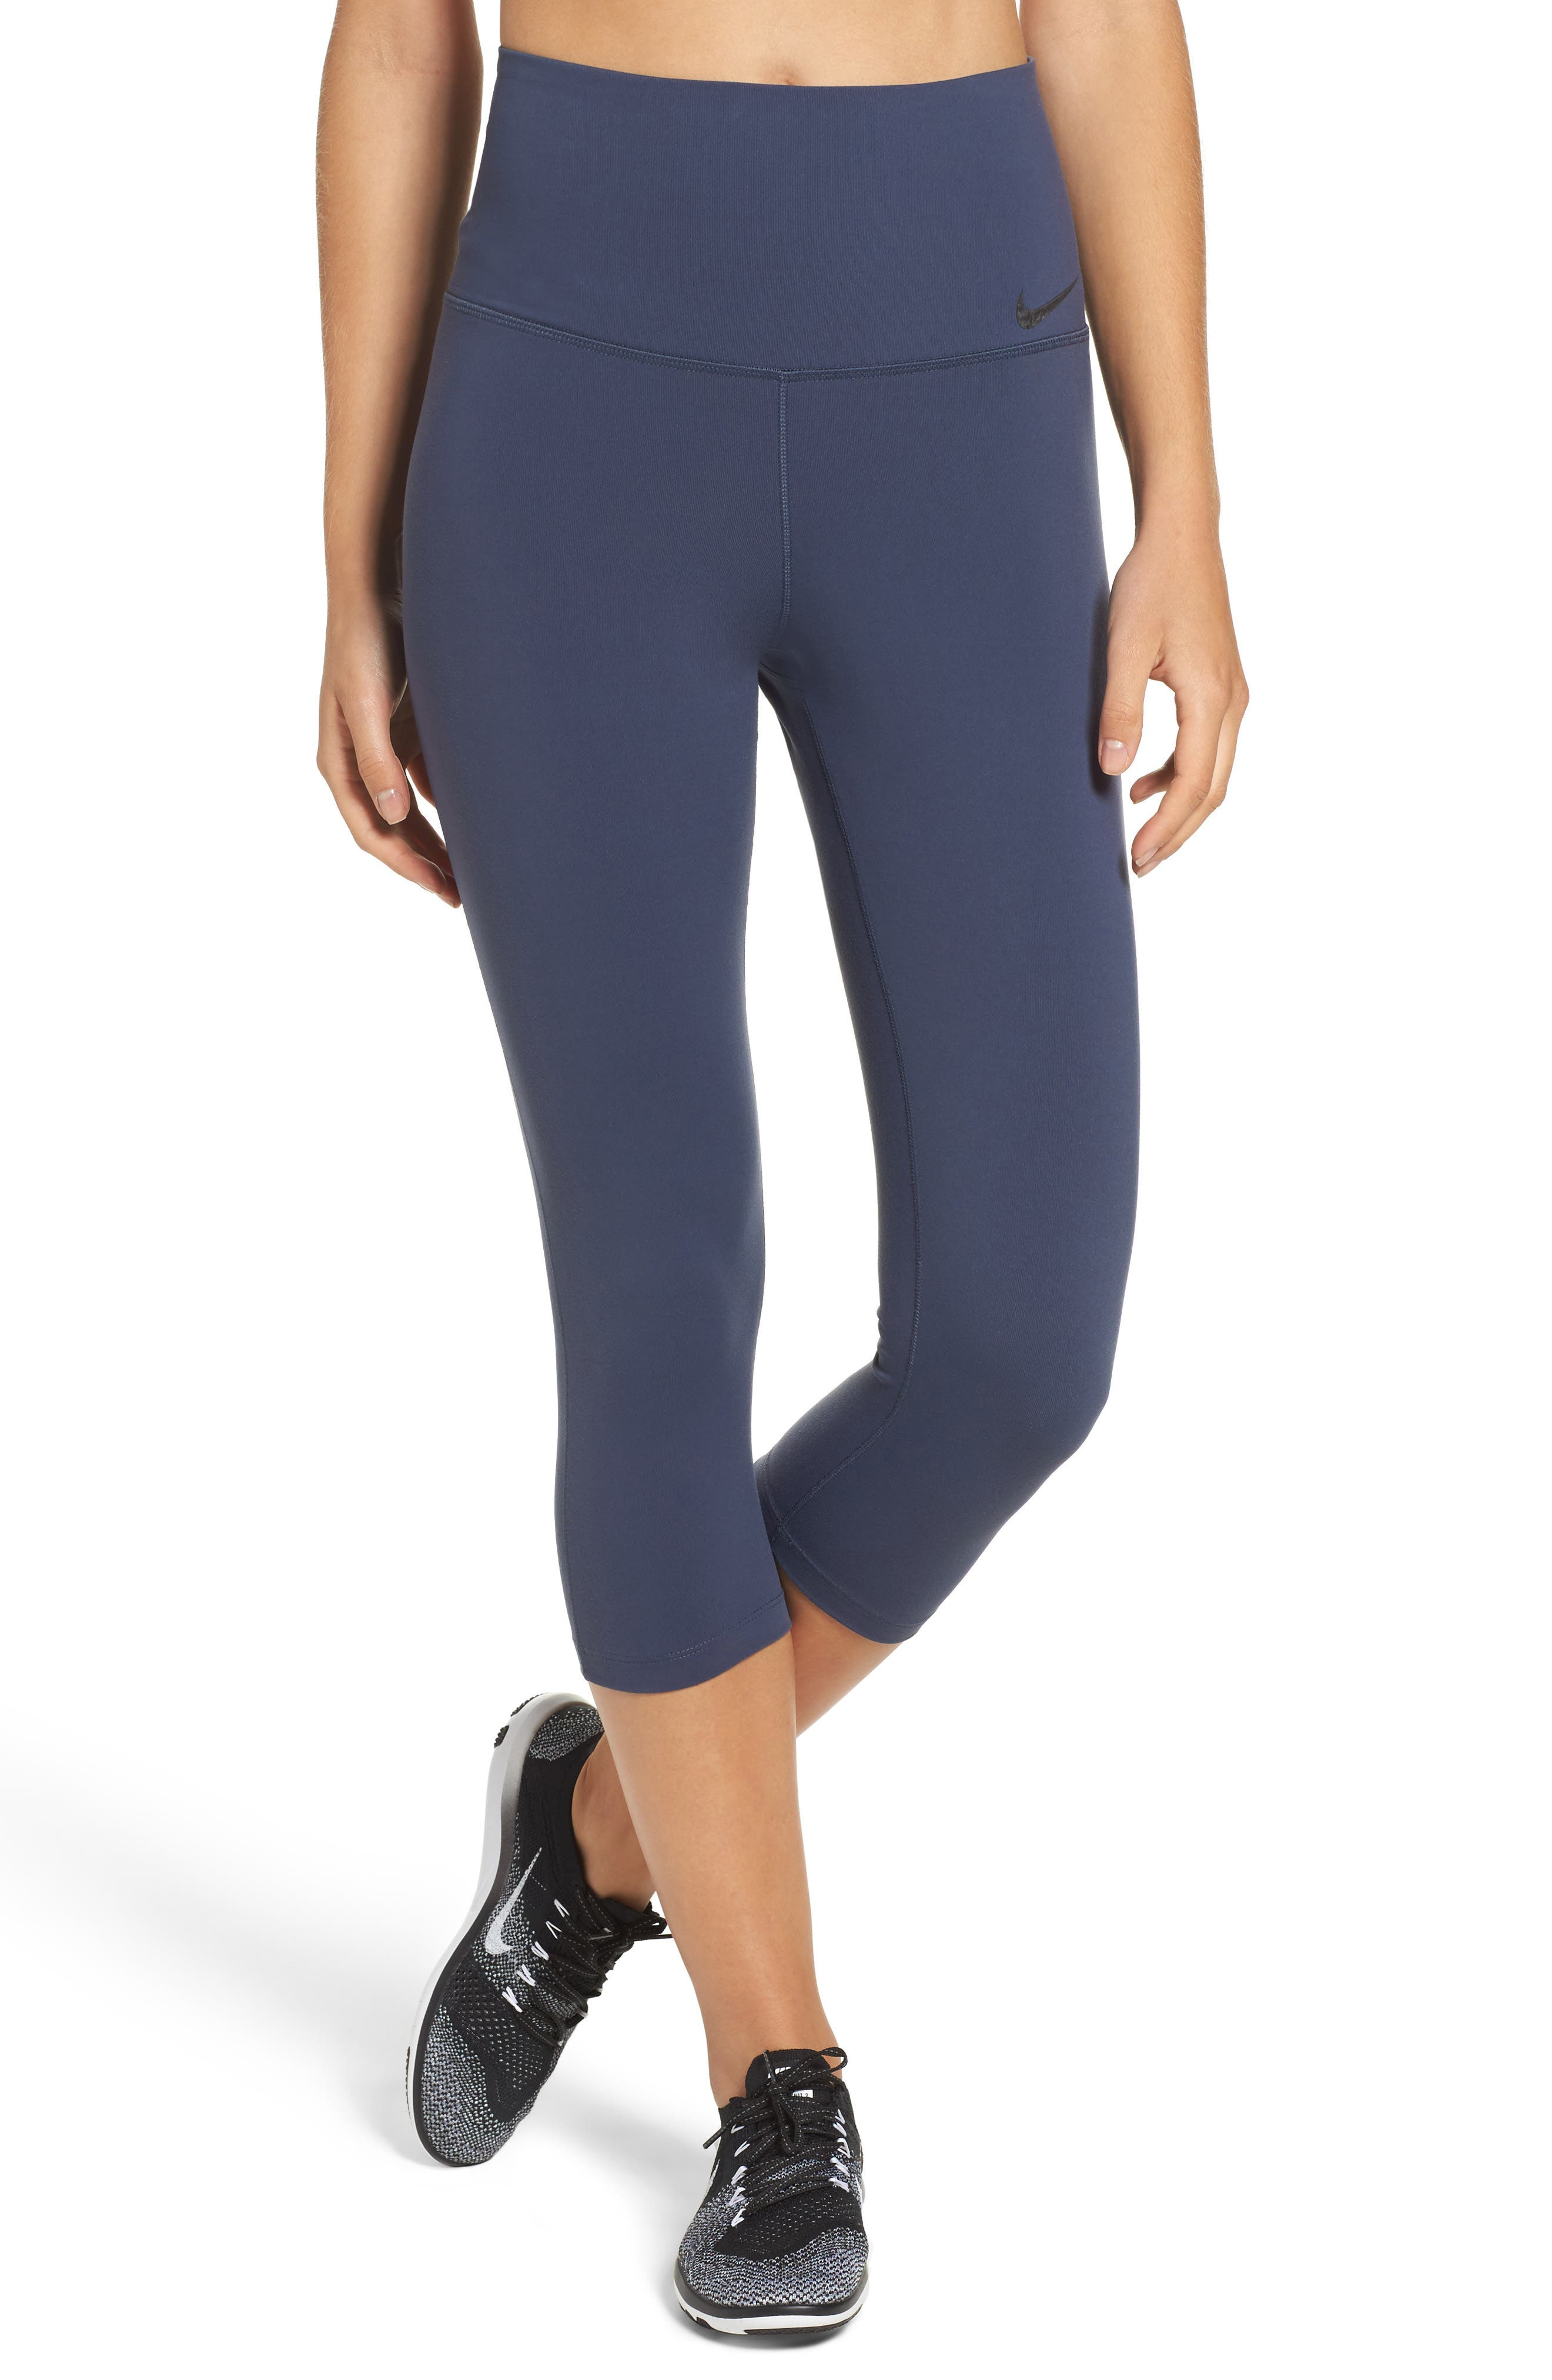 Nike Legendary High Rise Capris